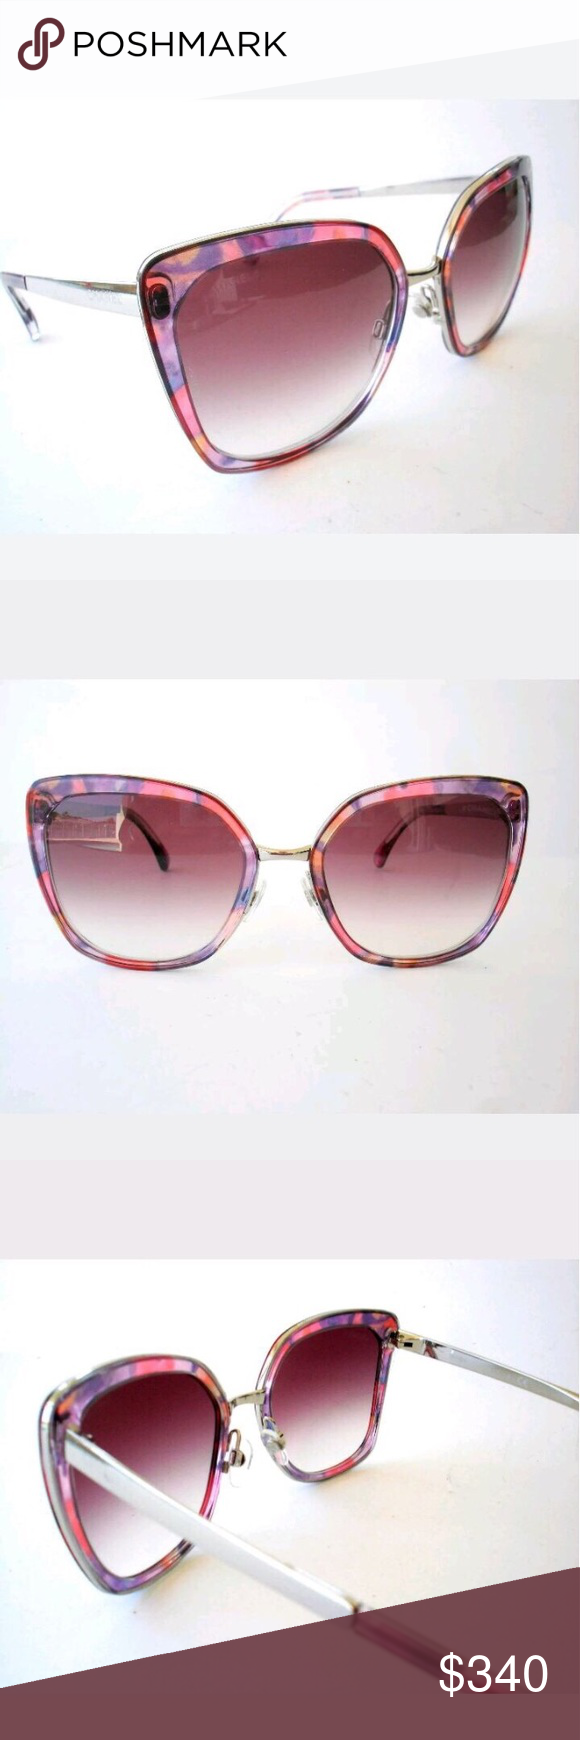 Spotted while shopping on Poshmark: NWOT Chanel sunglasses! #poshmark #fashion #shopping #style #CHANEL #Accessories